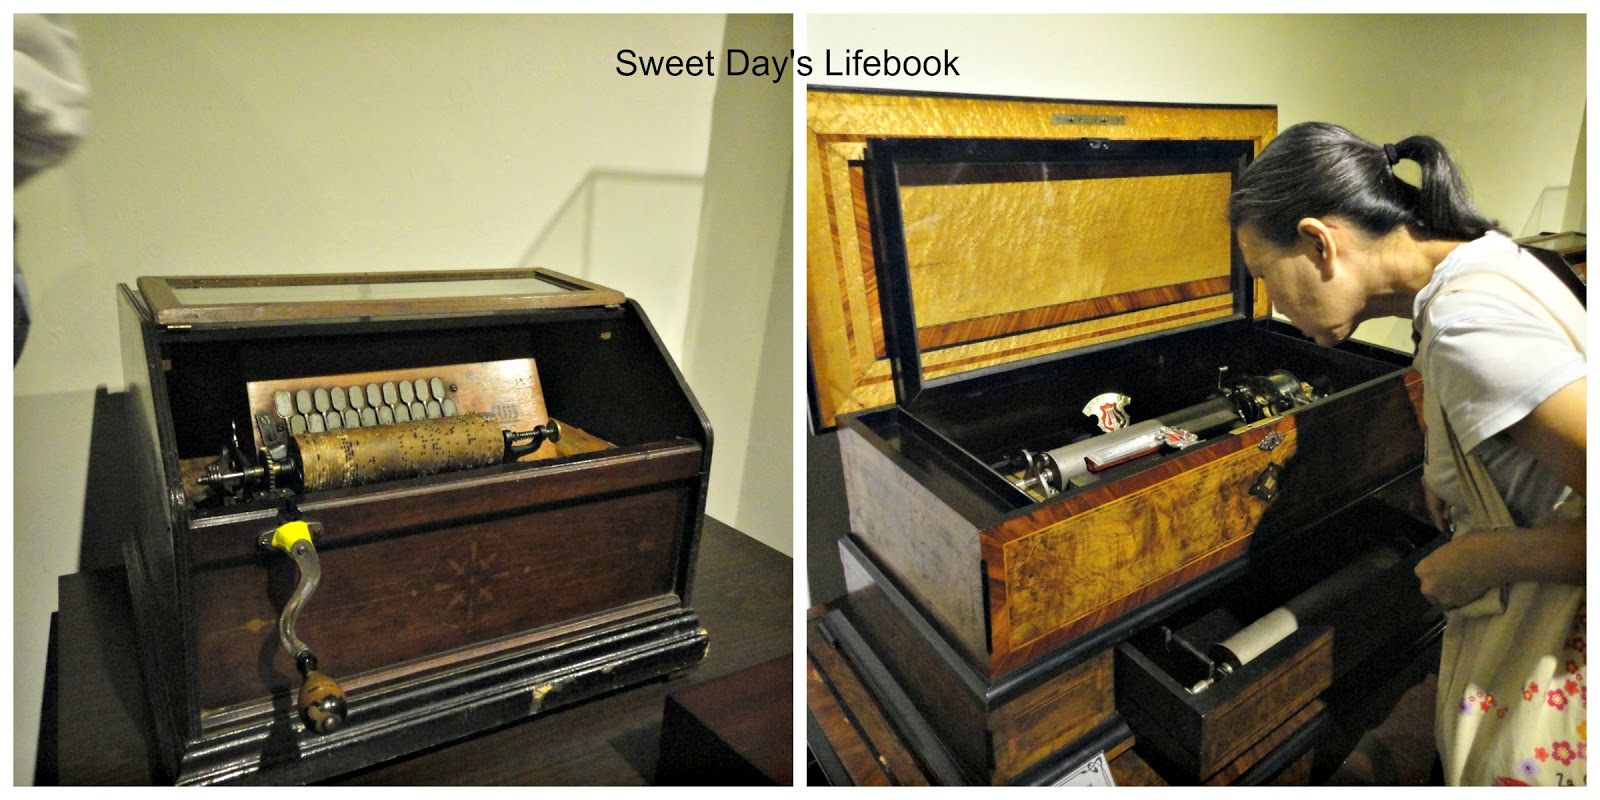 Sweet Days Lifebook Hidden Gem In Telok Ayer Singapore Musical - Music museums in usa